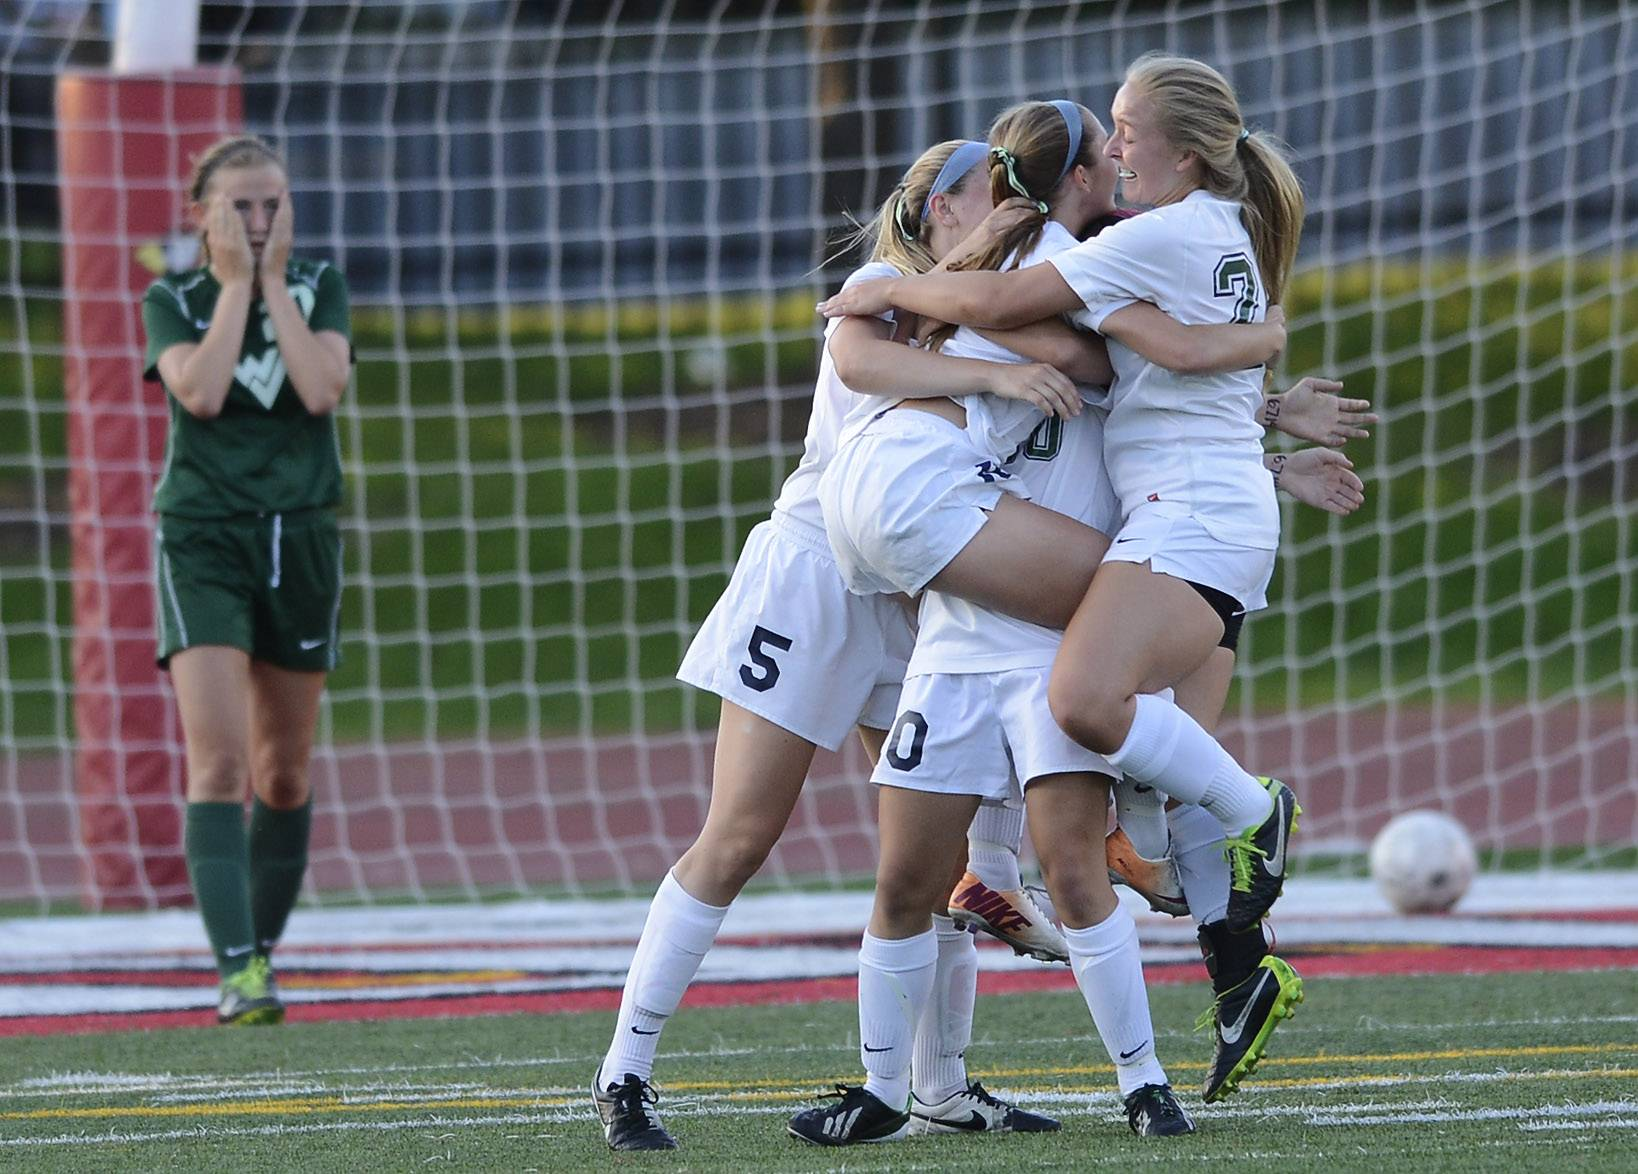 New Trier celebrates after scoring the game's only goal during the girls soccer Class 3A state semifinal against Waubonsie Valley at North Central College in Naperville Friday.